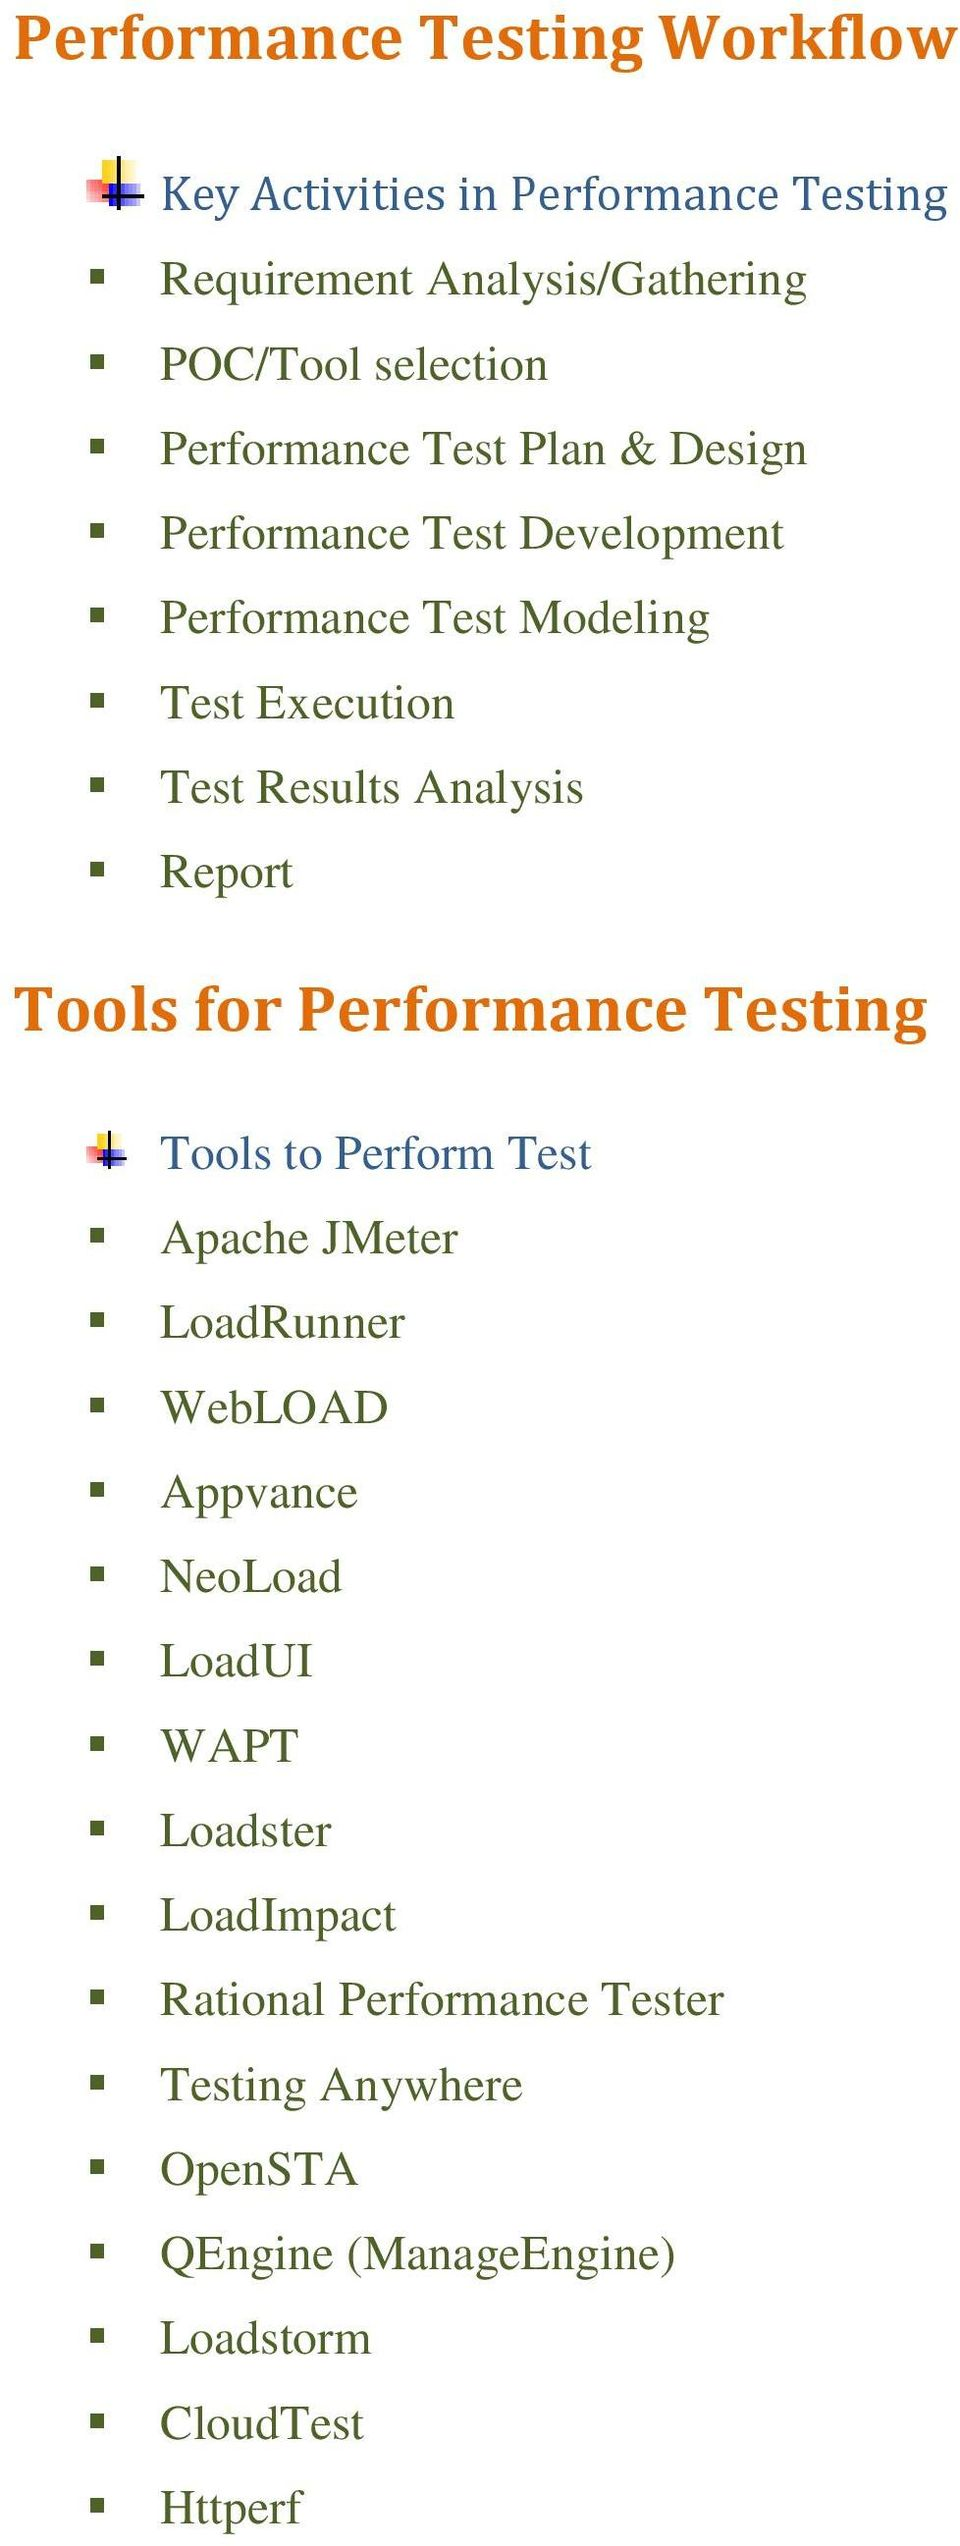 Analysis Report Tools for Performance Testing Tools to Perform Test Apache JMeter LoadRunner WebLOAD Appvance NeoLoad